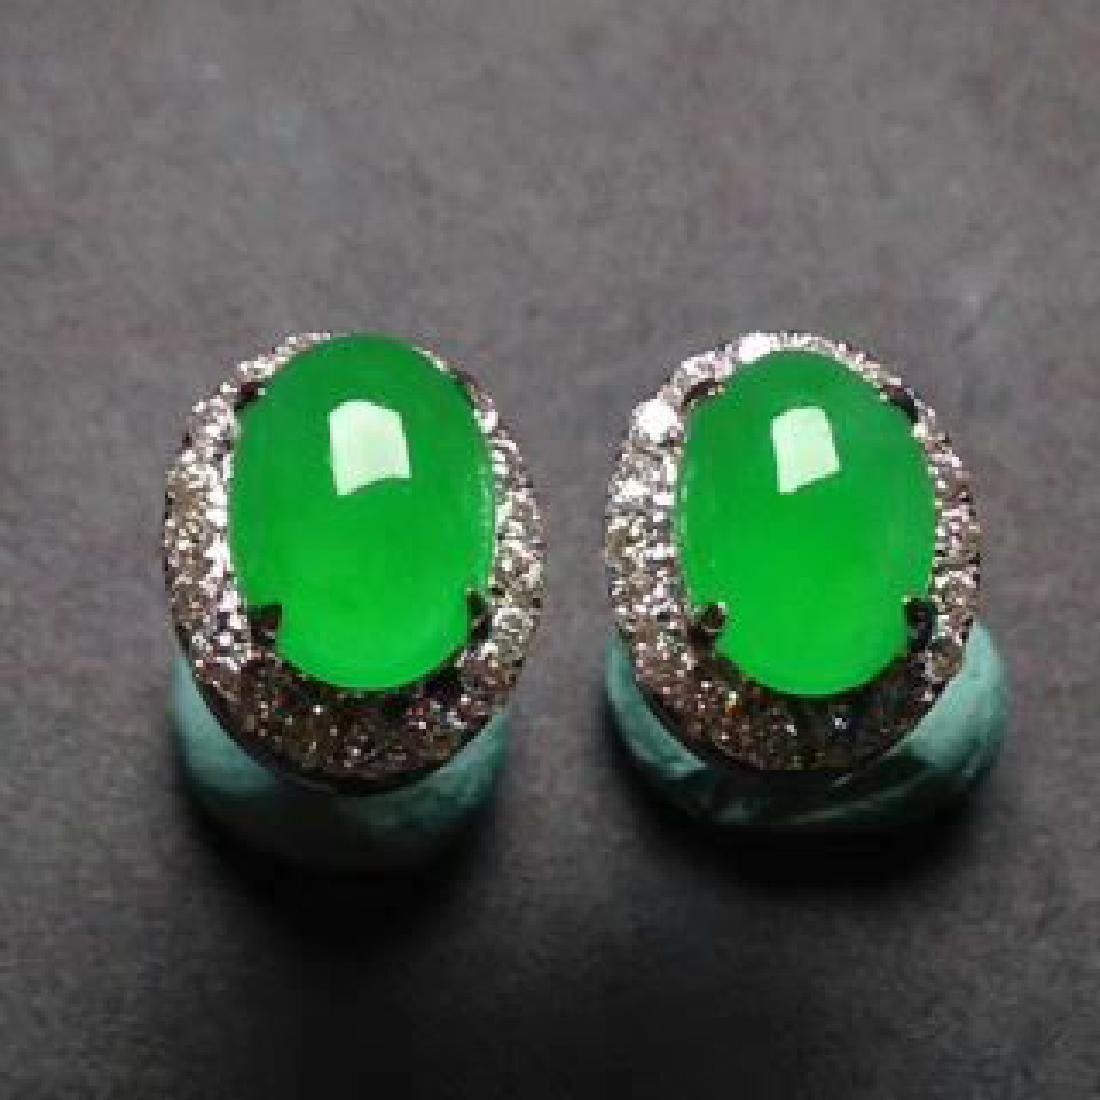 Chinese Jadeite 18K Gold Earrings